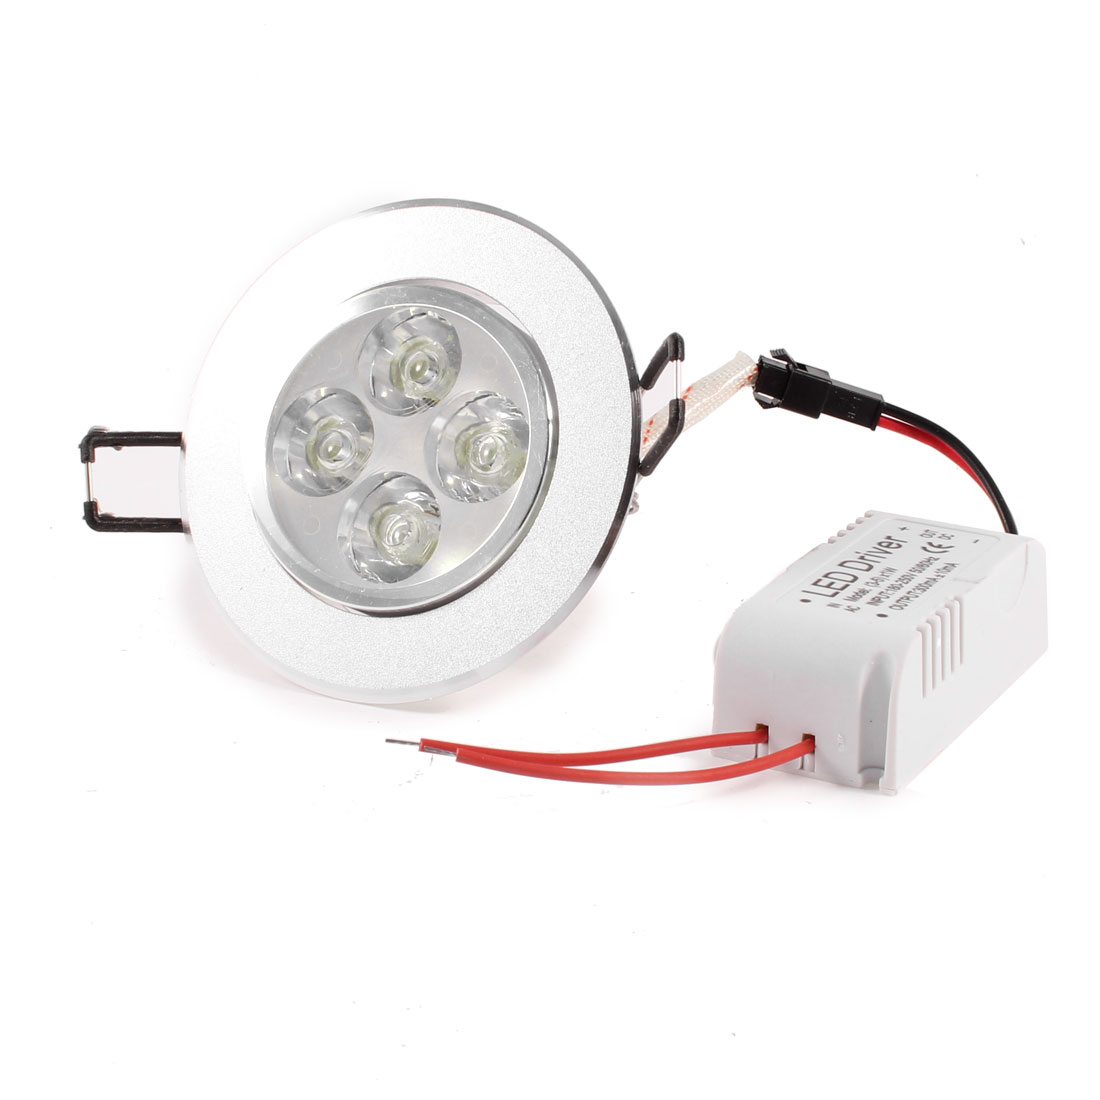 180V-250V 4x1W 4W Recessed Ceiling Downlight Warm White Bulb Light w LED Driver